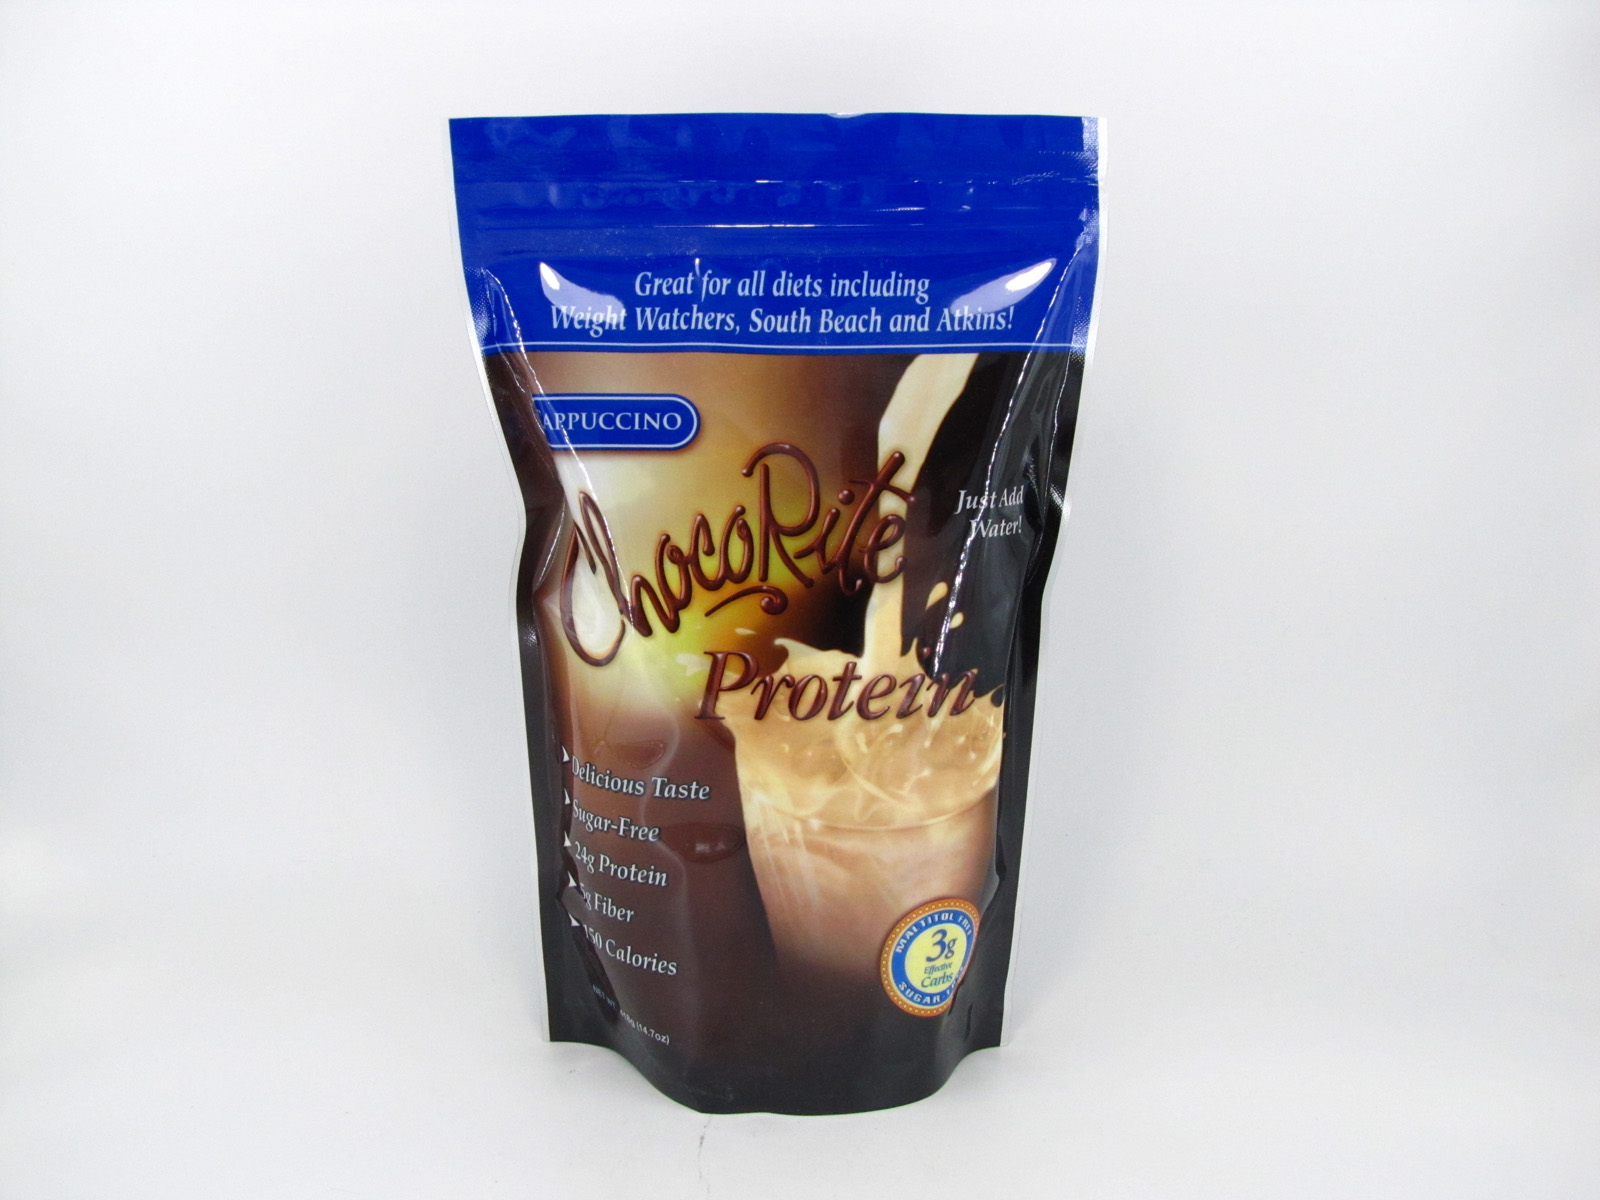 Chocorite Protein Shake (1lb)- Cappuccino - front view